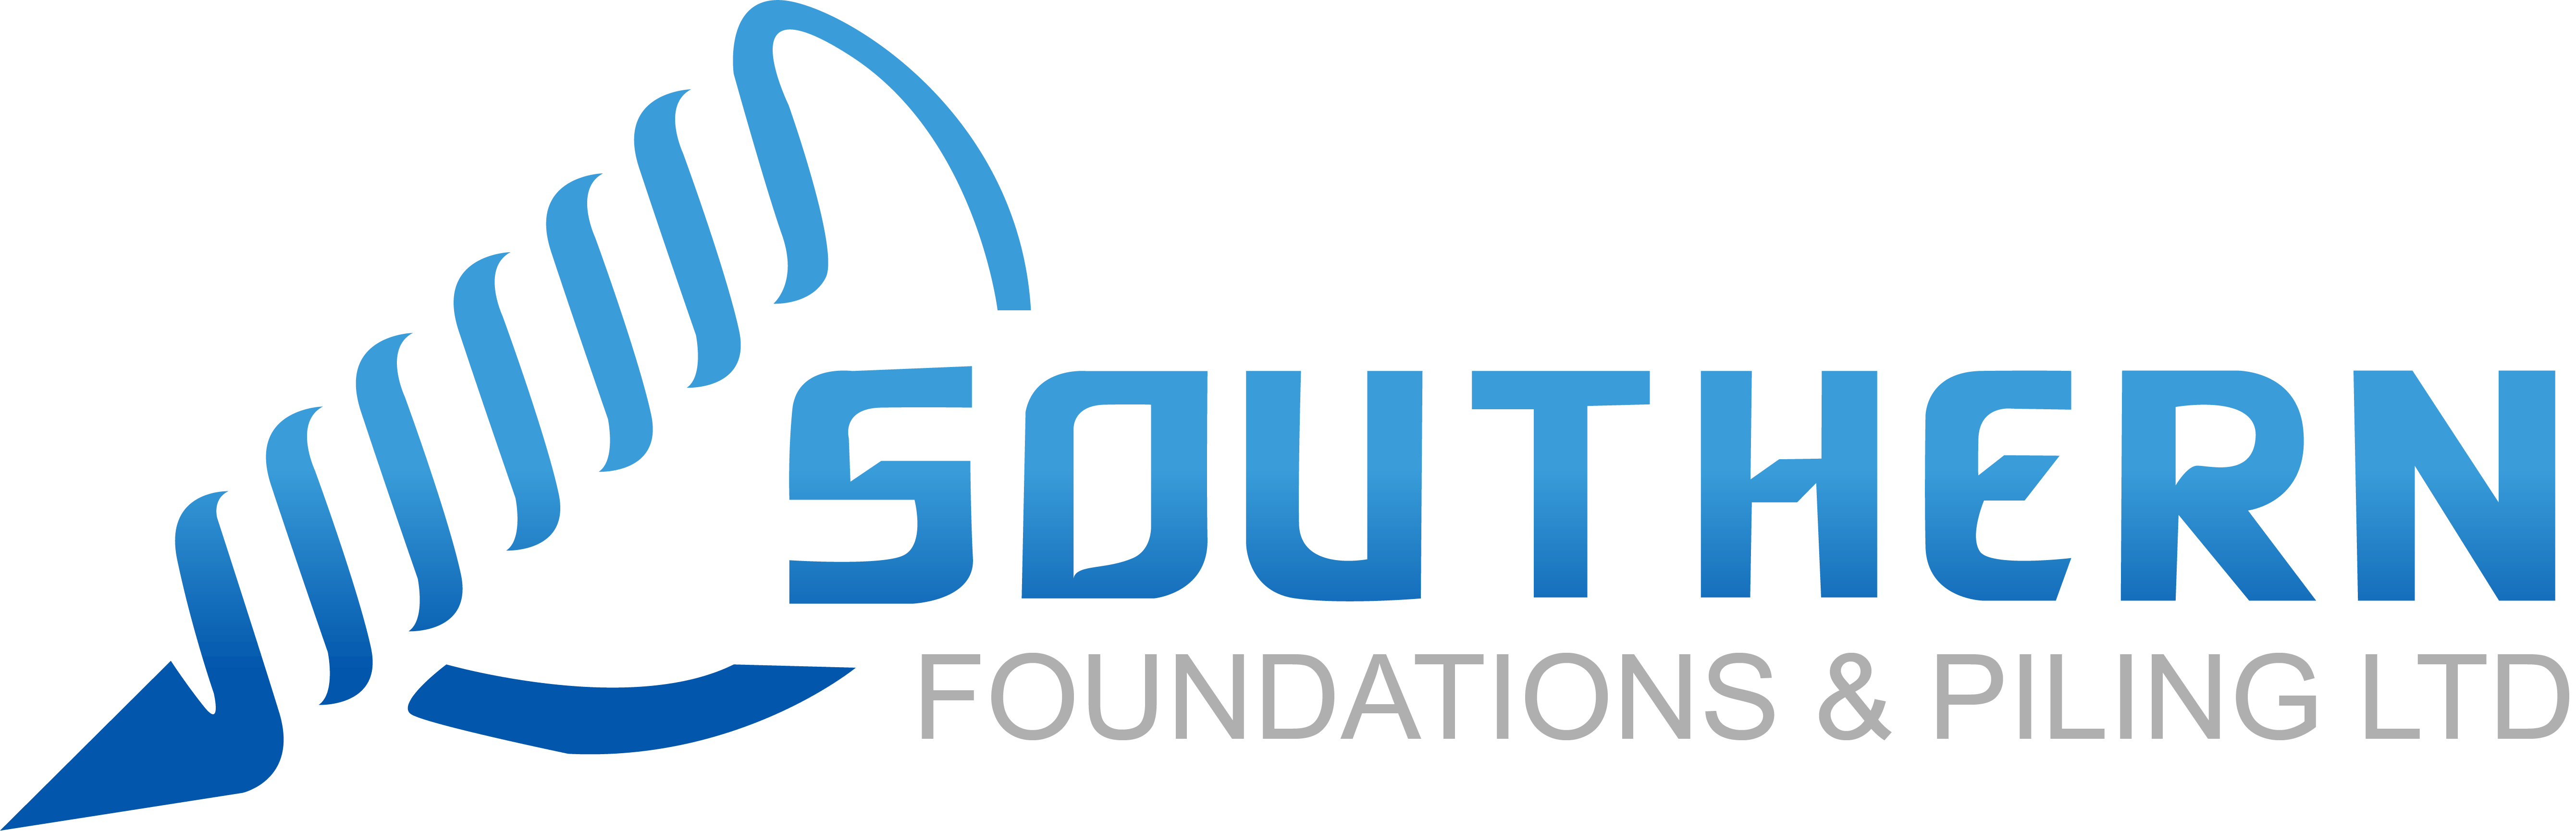 Southern Foundations & Pilings